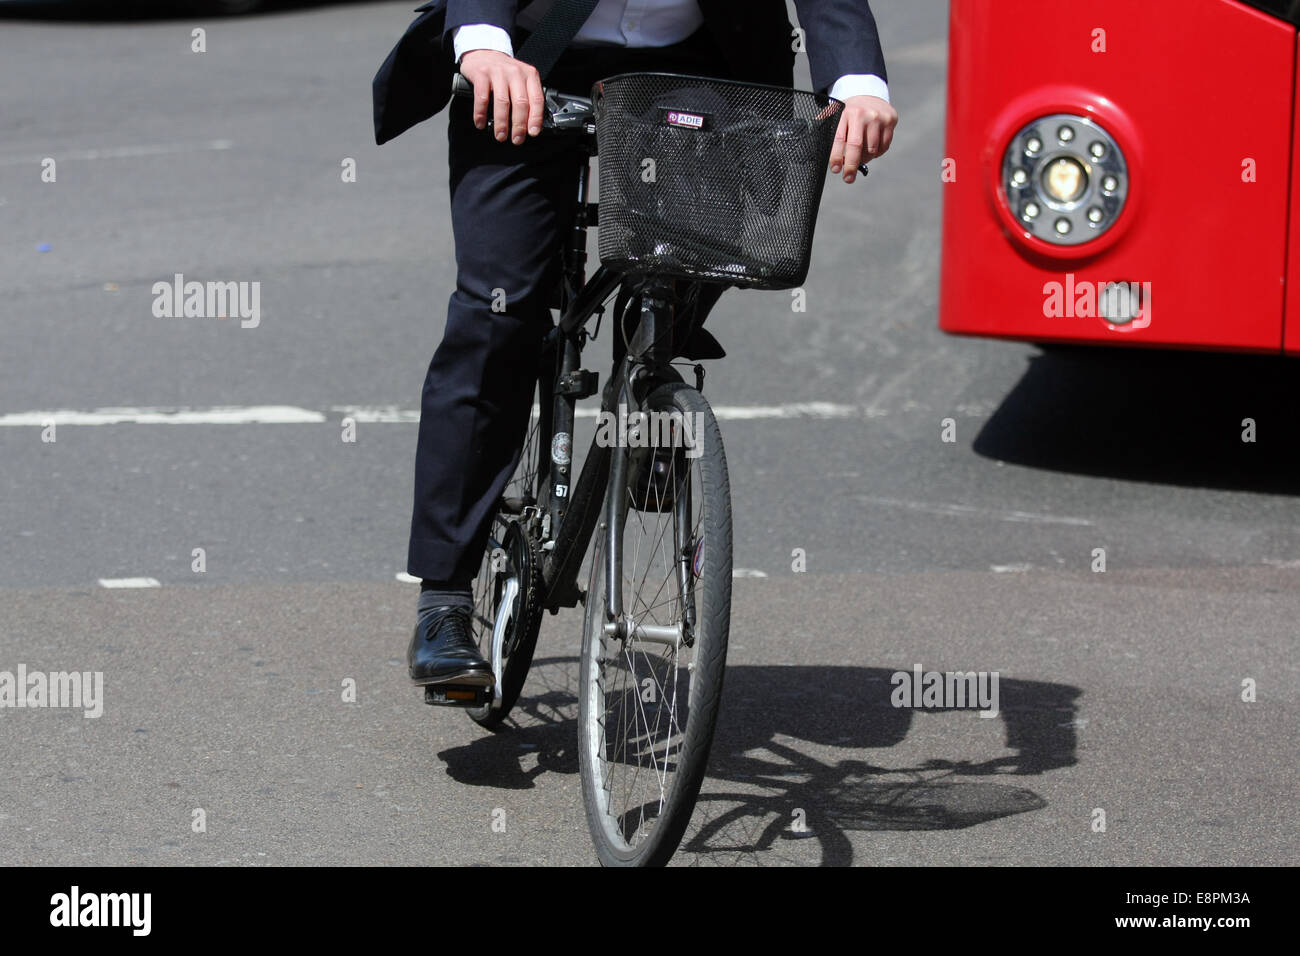 A city gent cycling in front of a red London bus - Stock Image